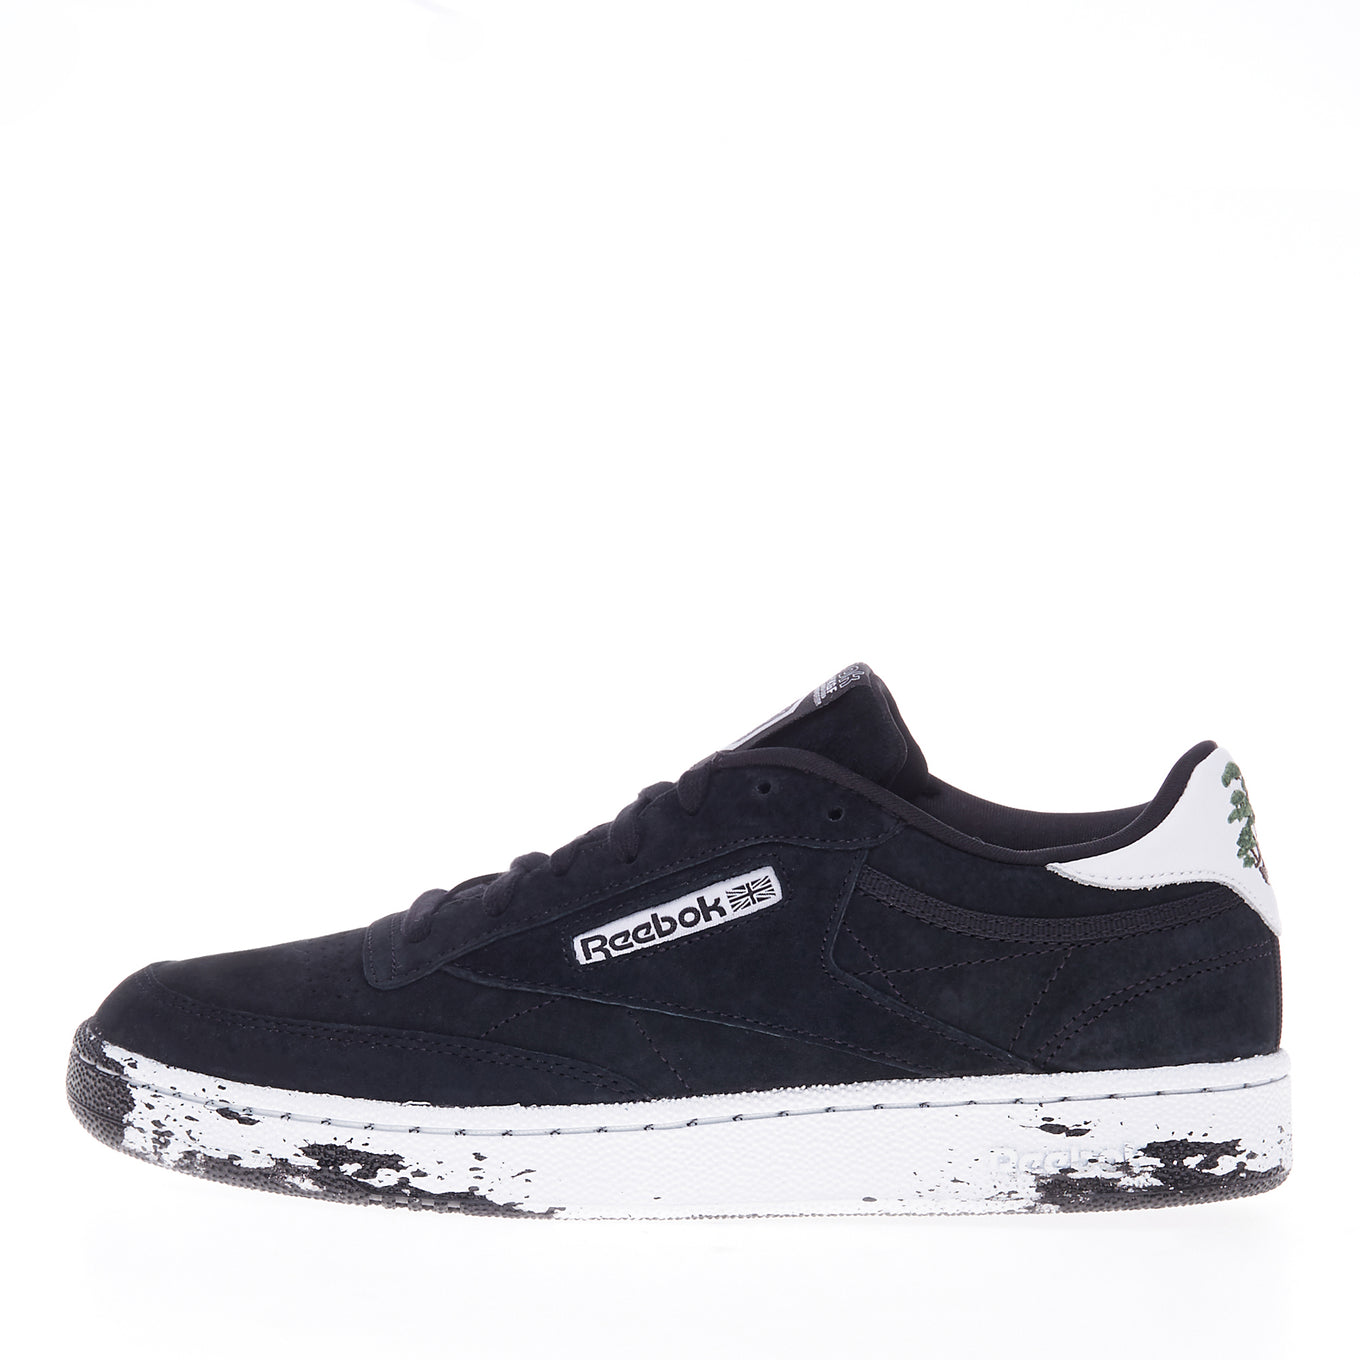 REEBOK CLUB C 85 X YOSHIOKUBO